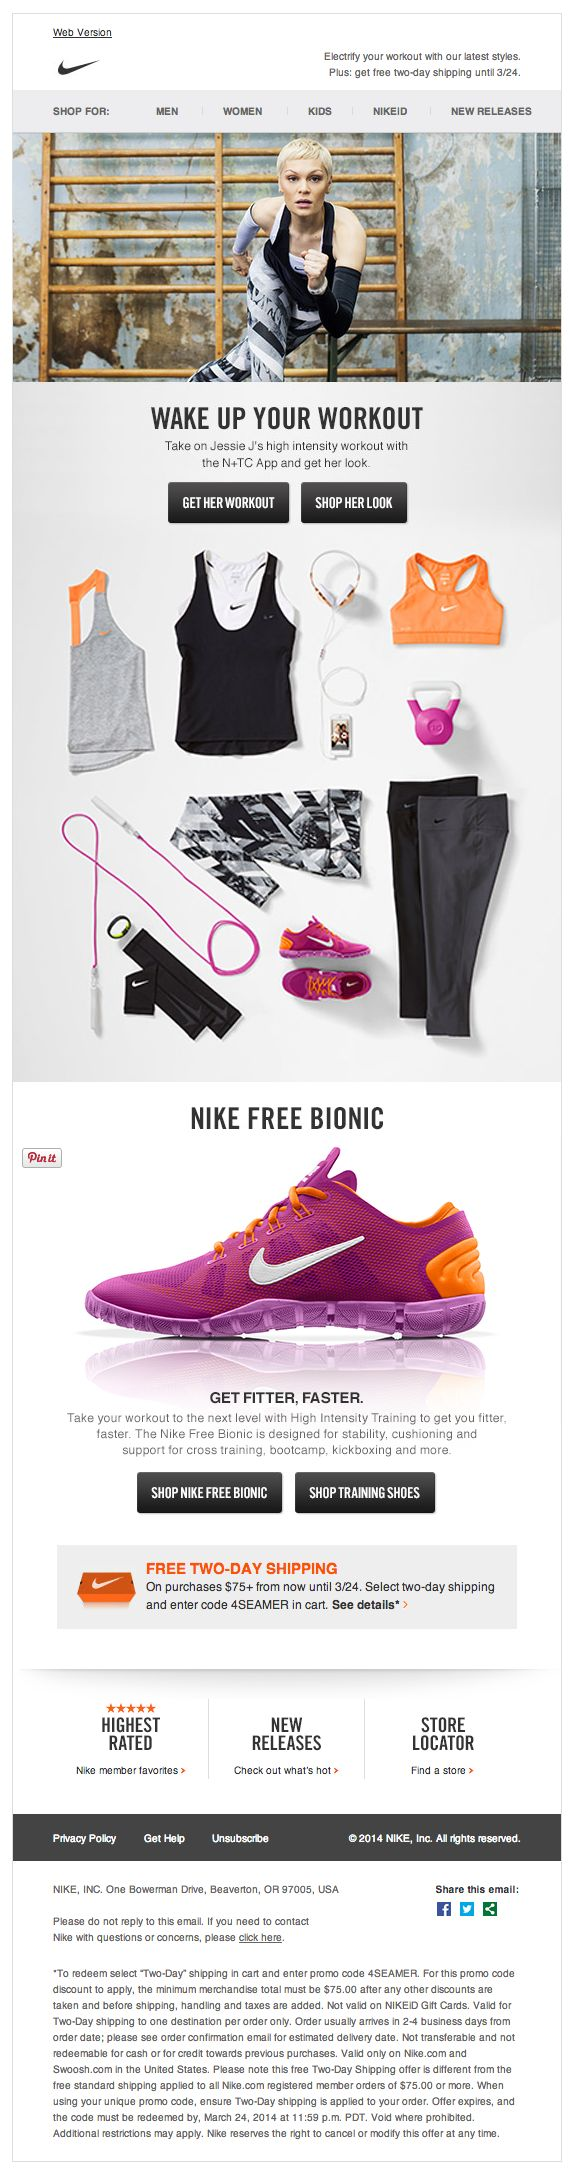 Bright new activewear - Nike email design 2014